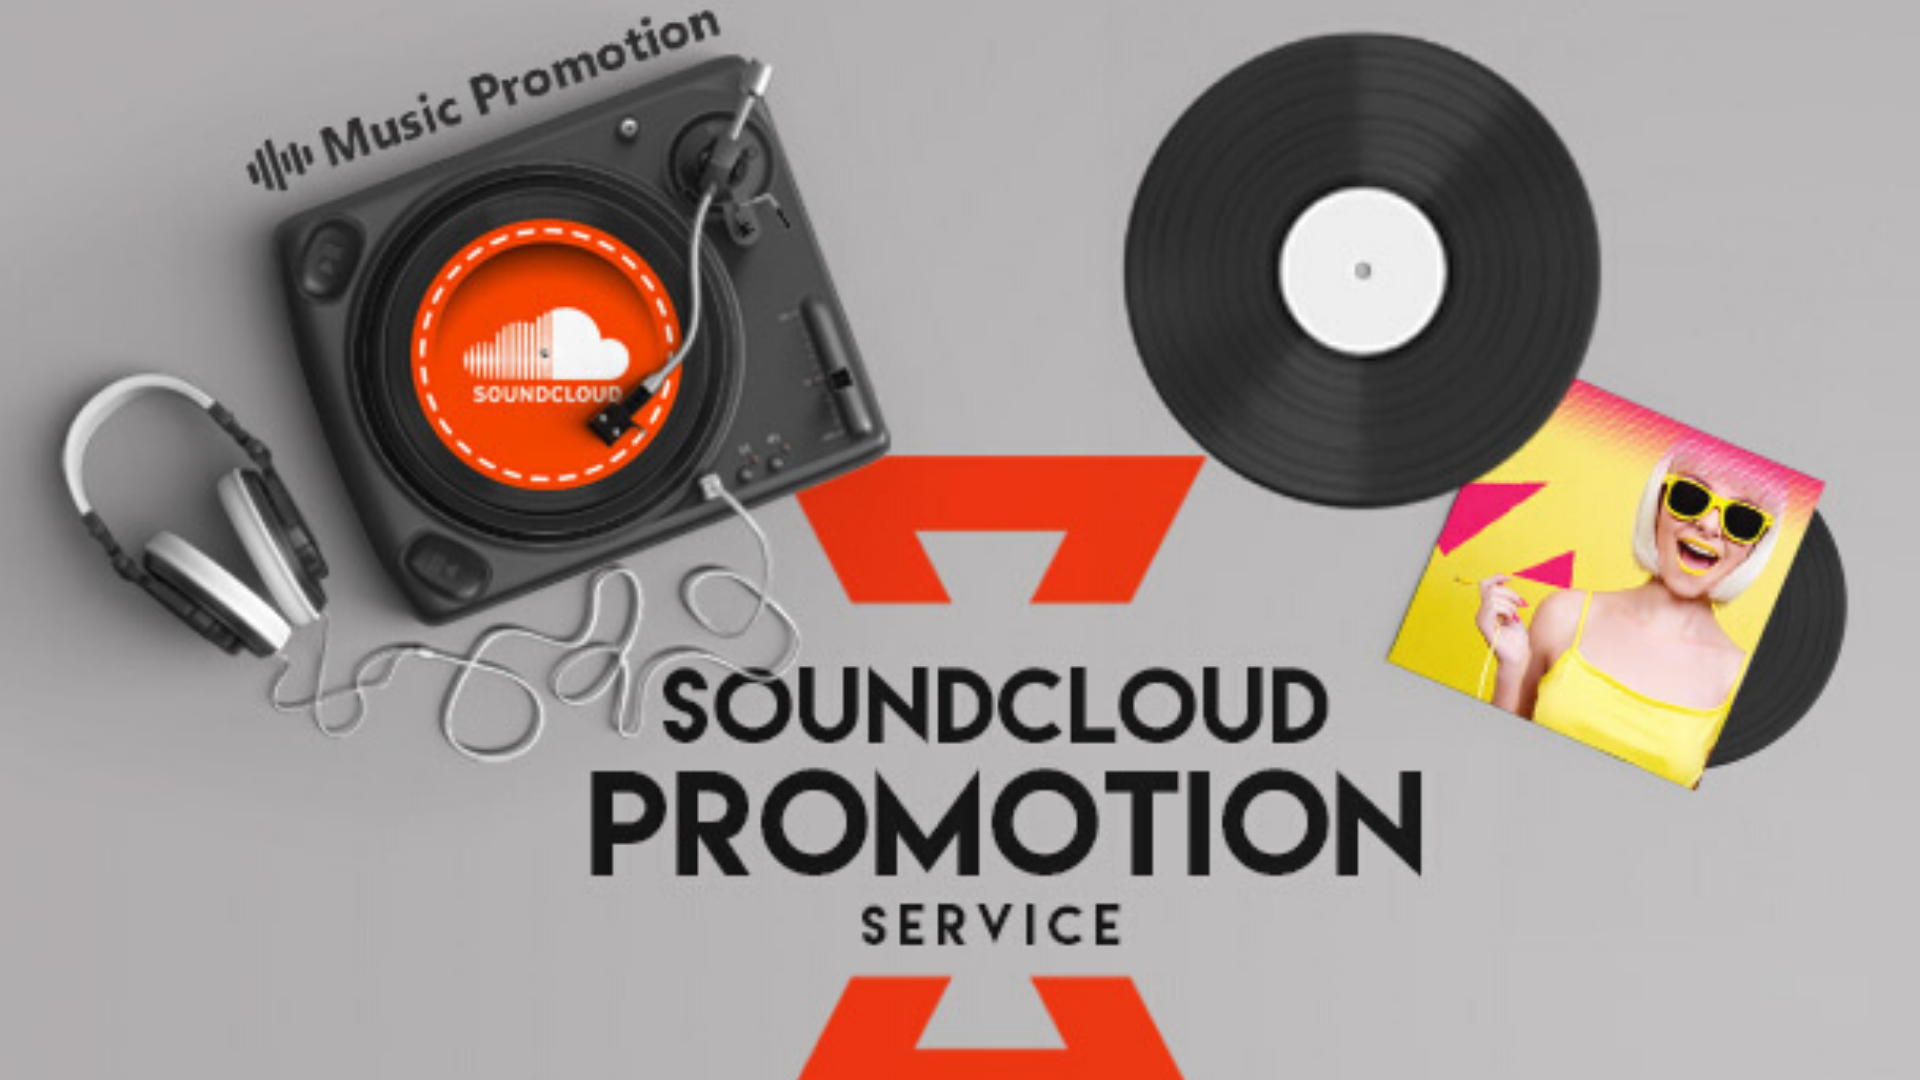 Do viral soundcloud promotion for your soundcloud music and tracks, FiverrBox